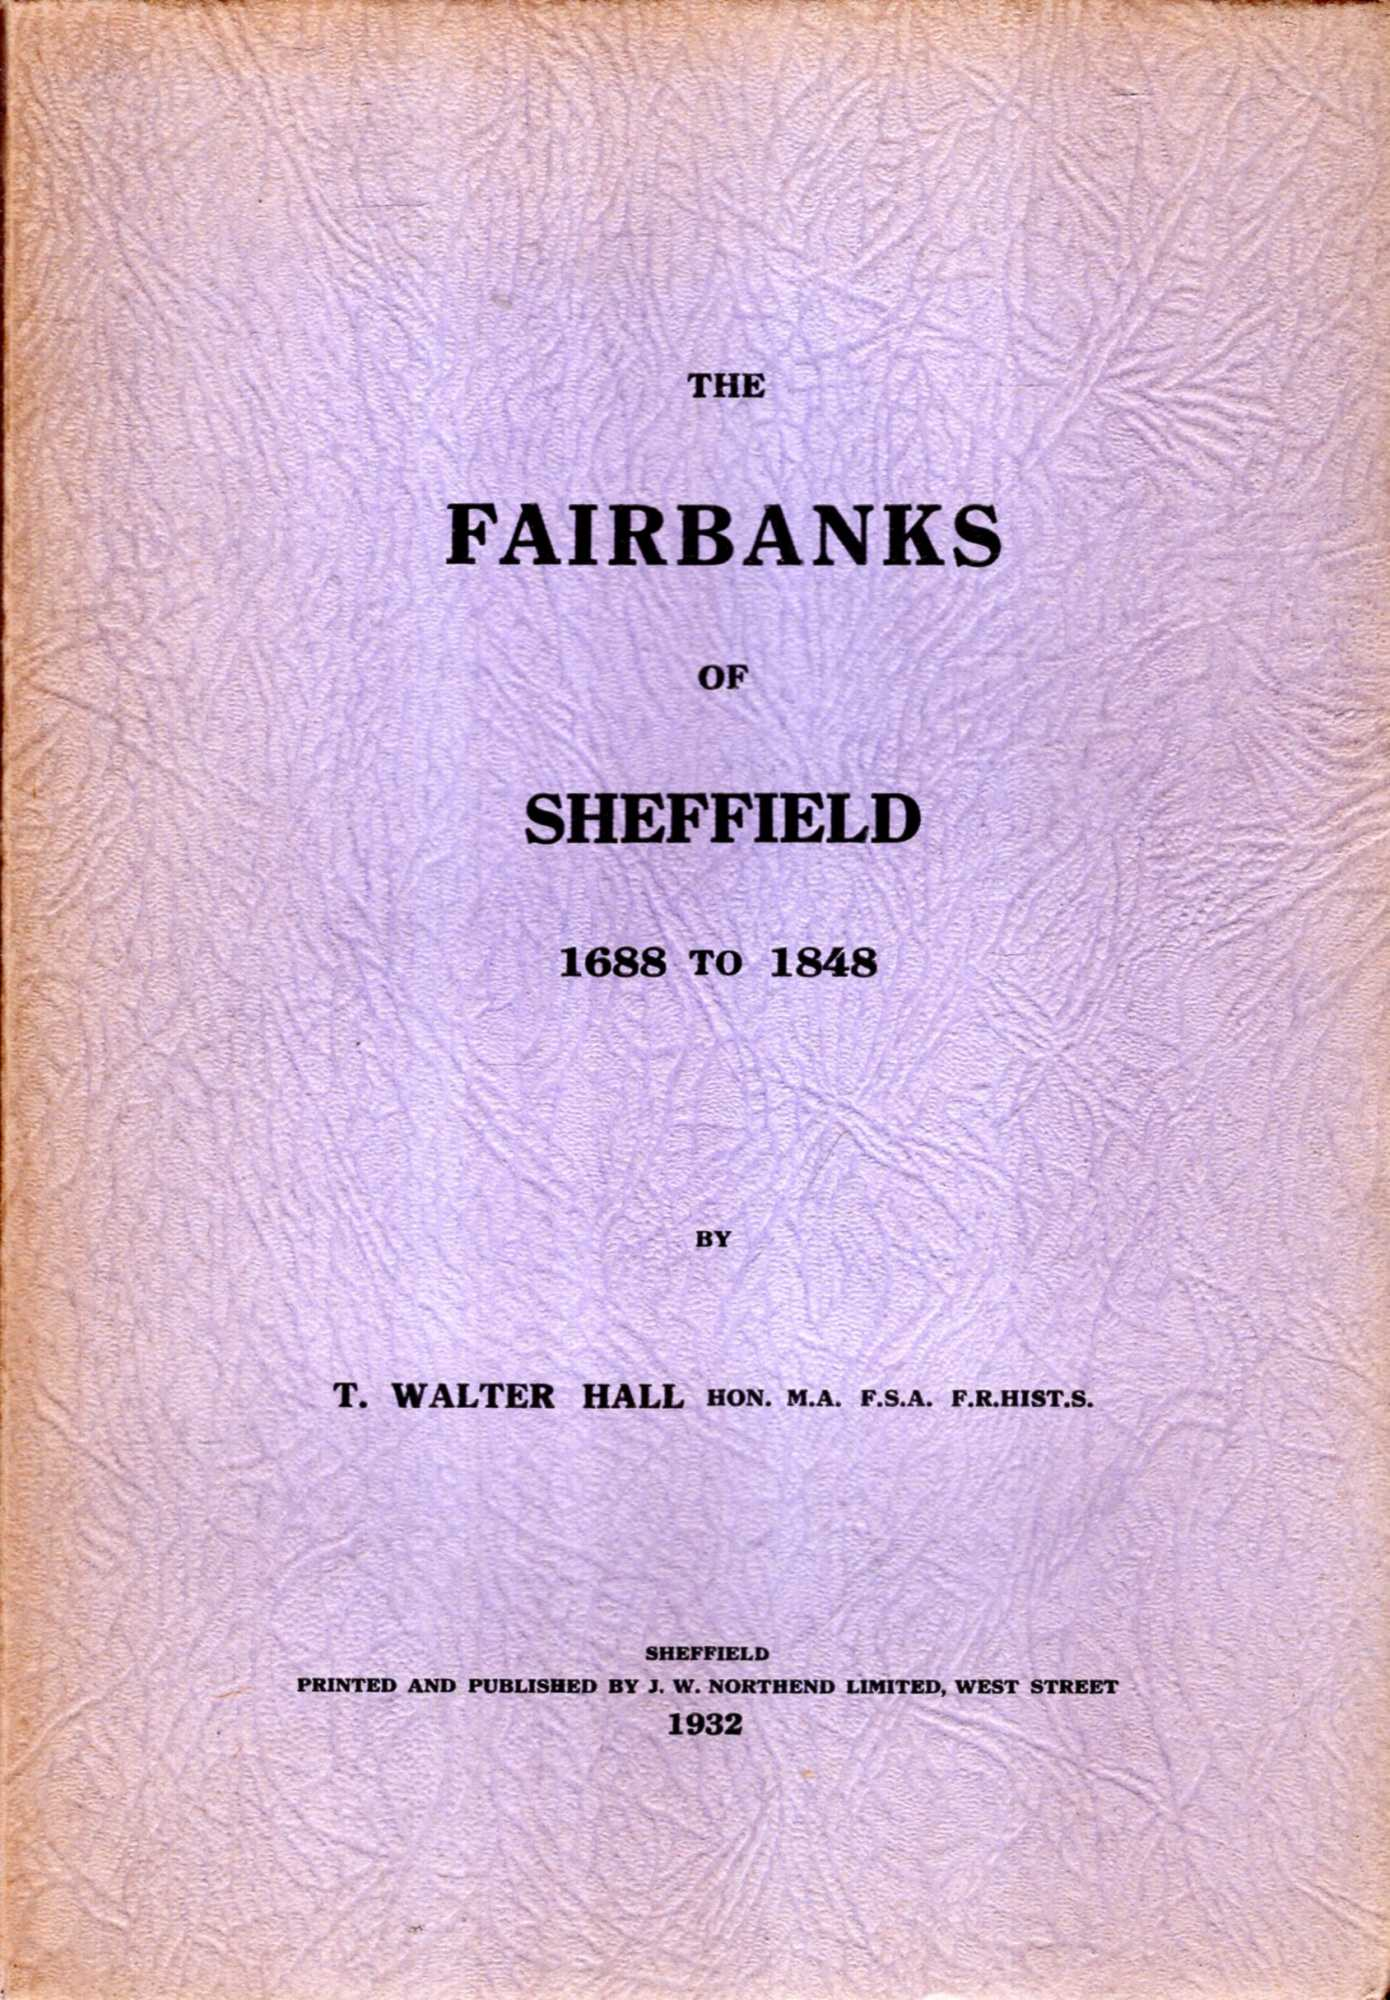 Image for The Fairbanks of Sheffield 1688 to 1848